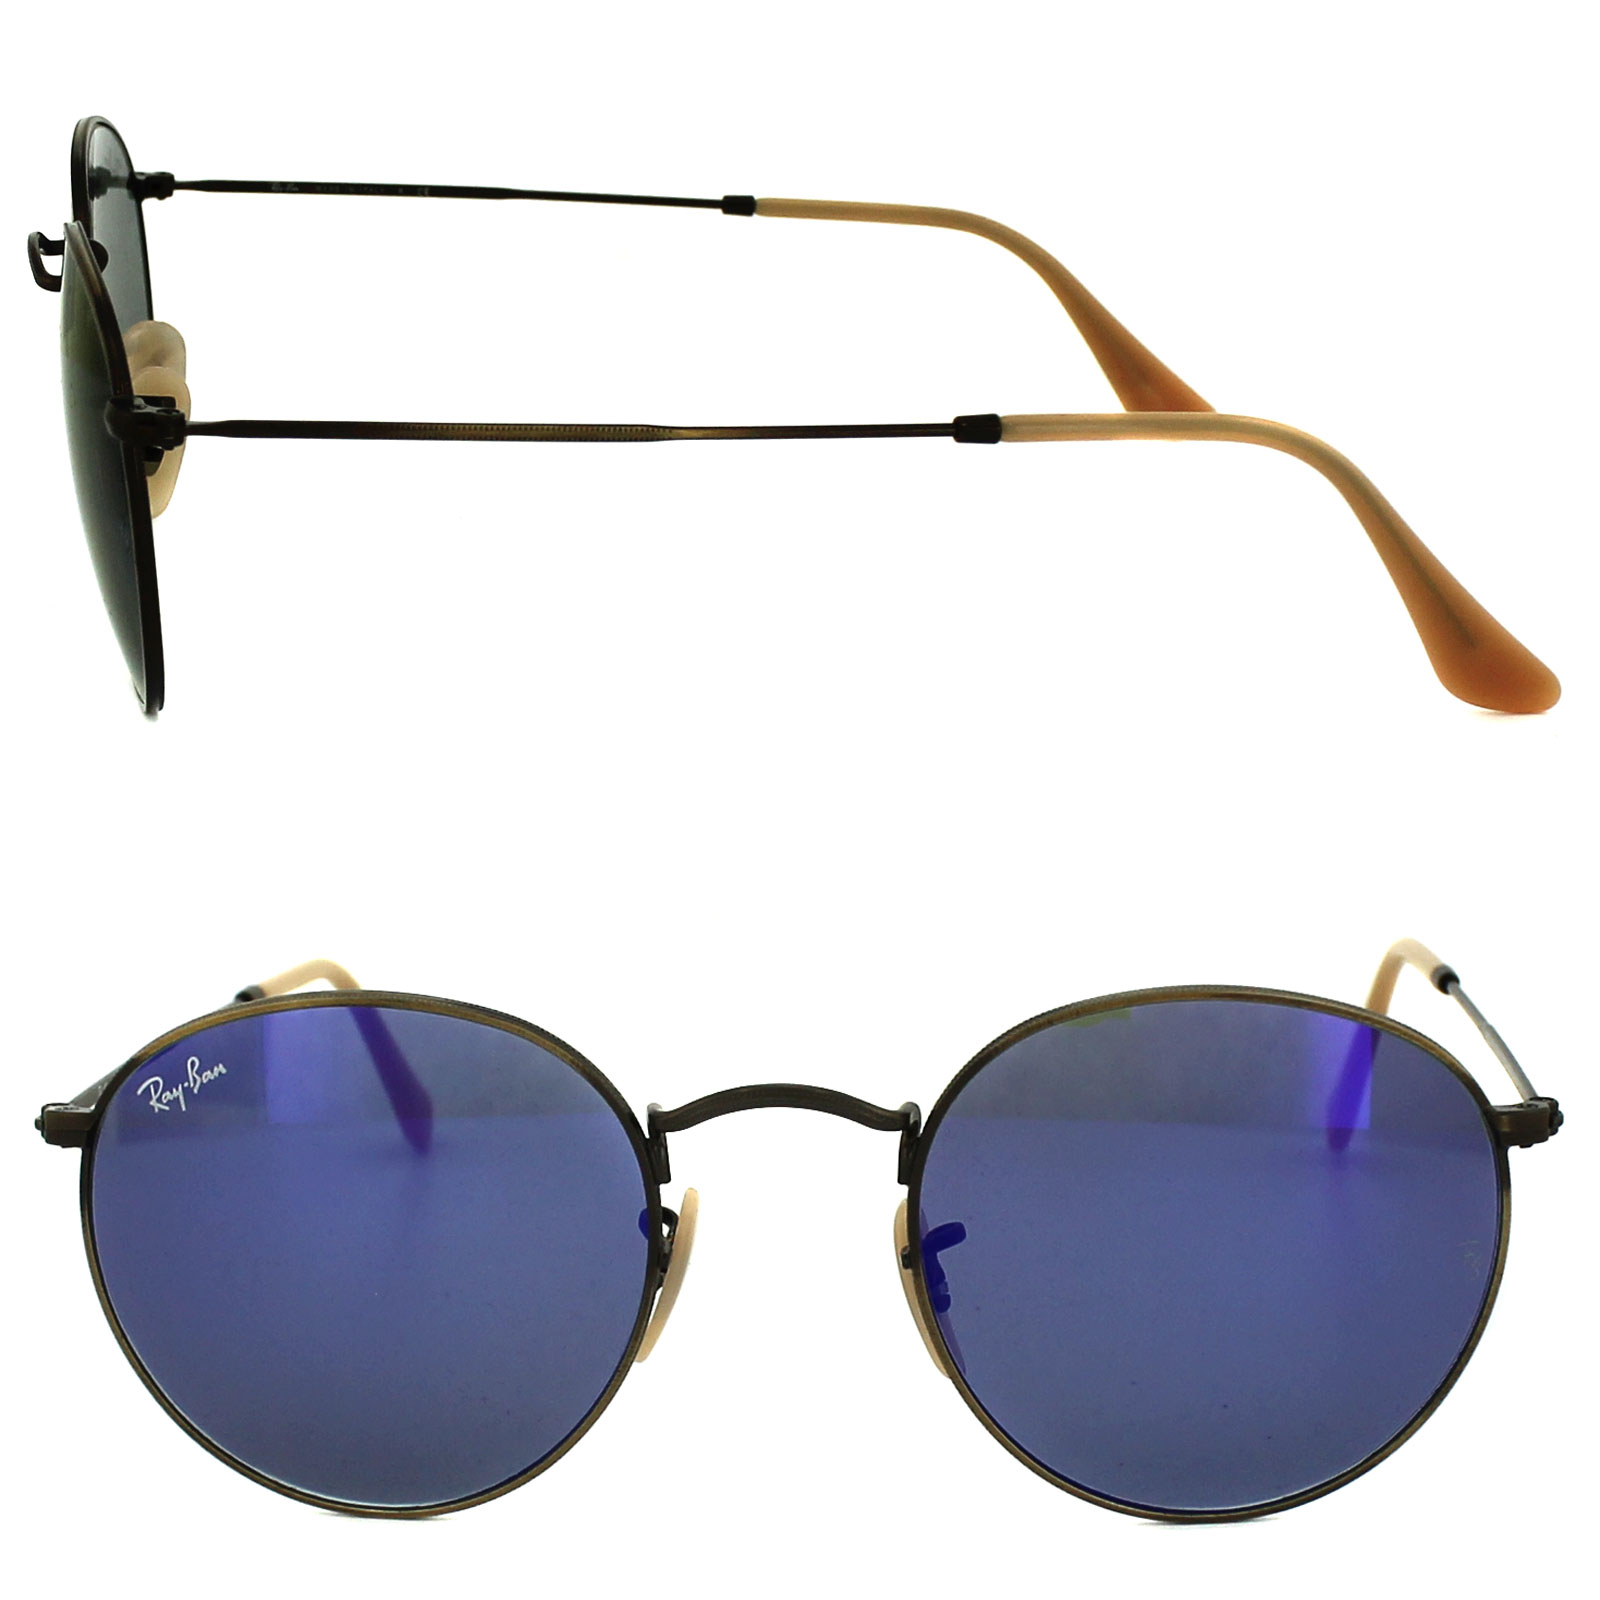 6c0d4699130 Sentinel Ray-Ban Sunglasses Round Metal 3447 167 68 Brushed Bronze Blue  Flash Mirror M